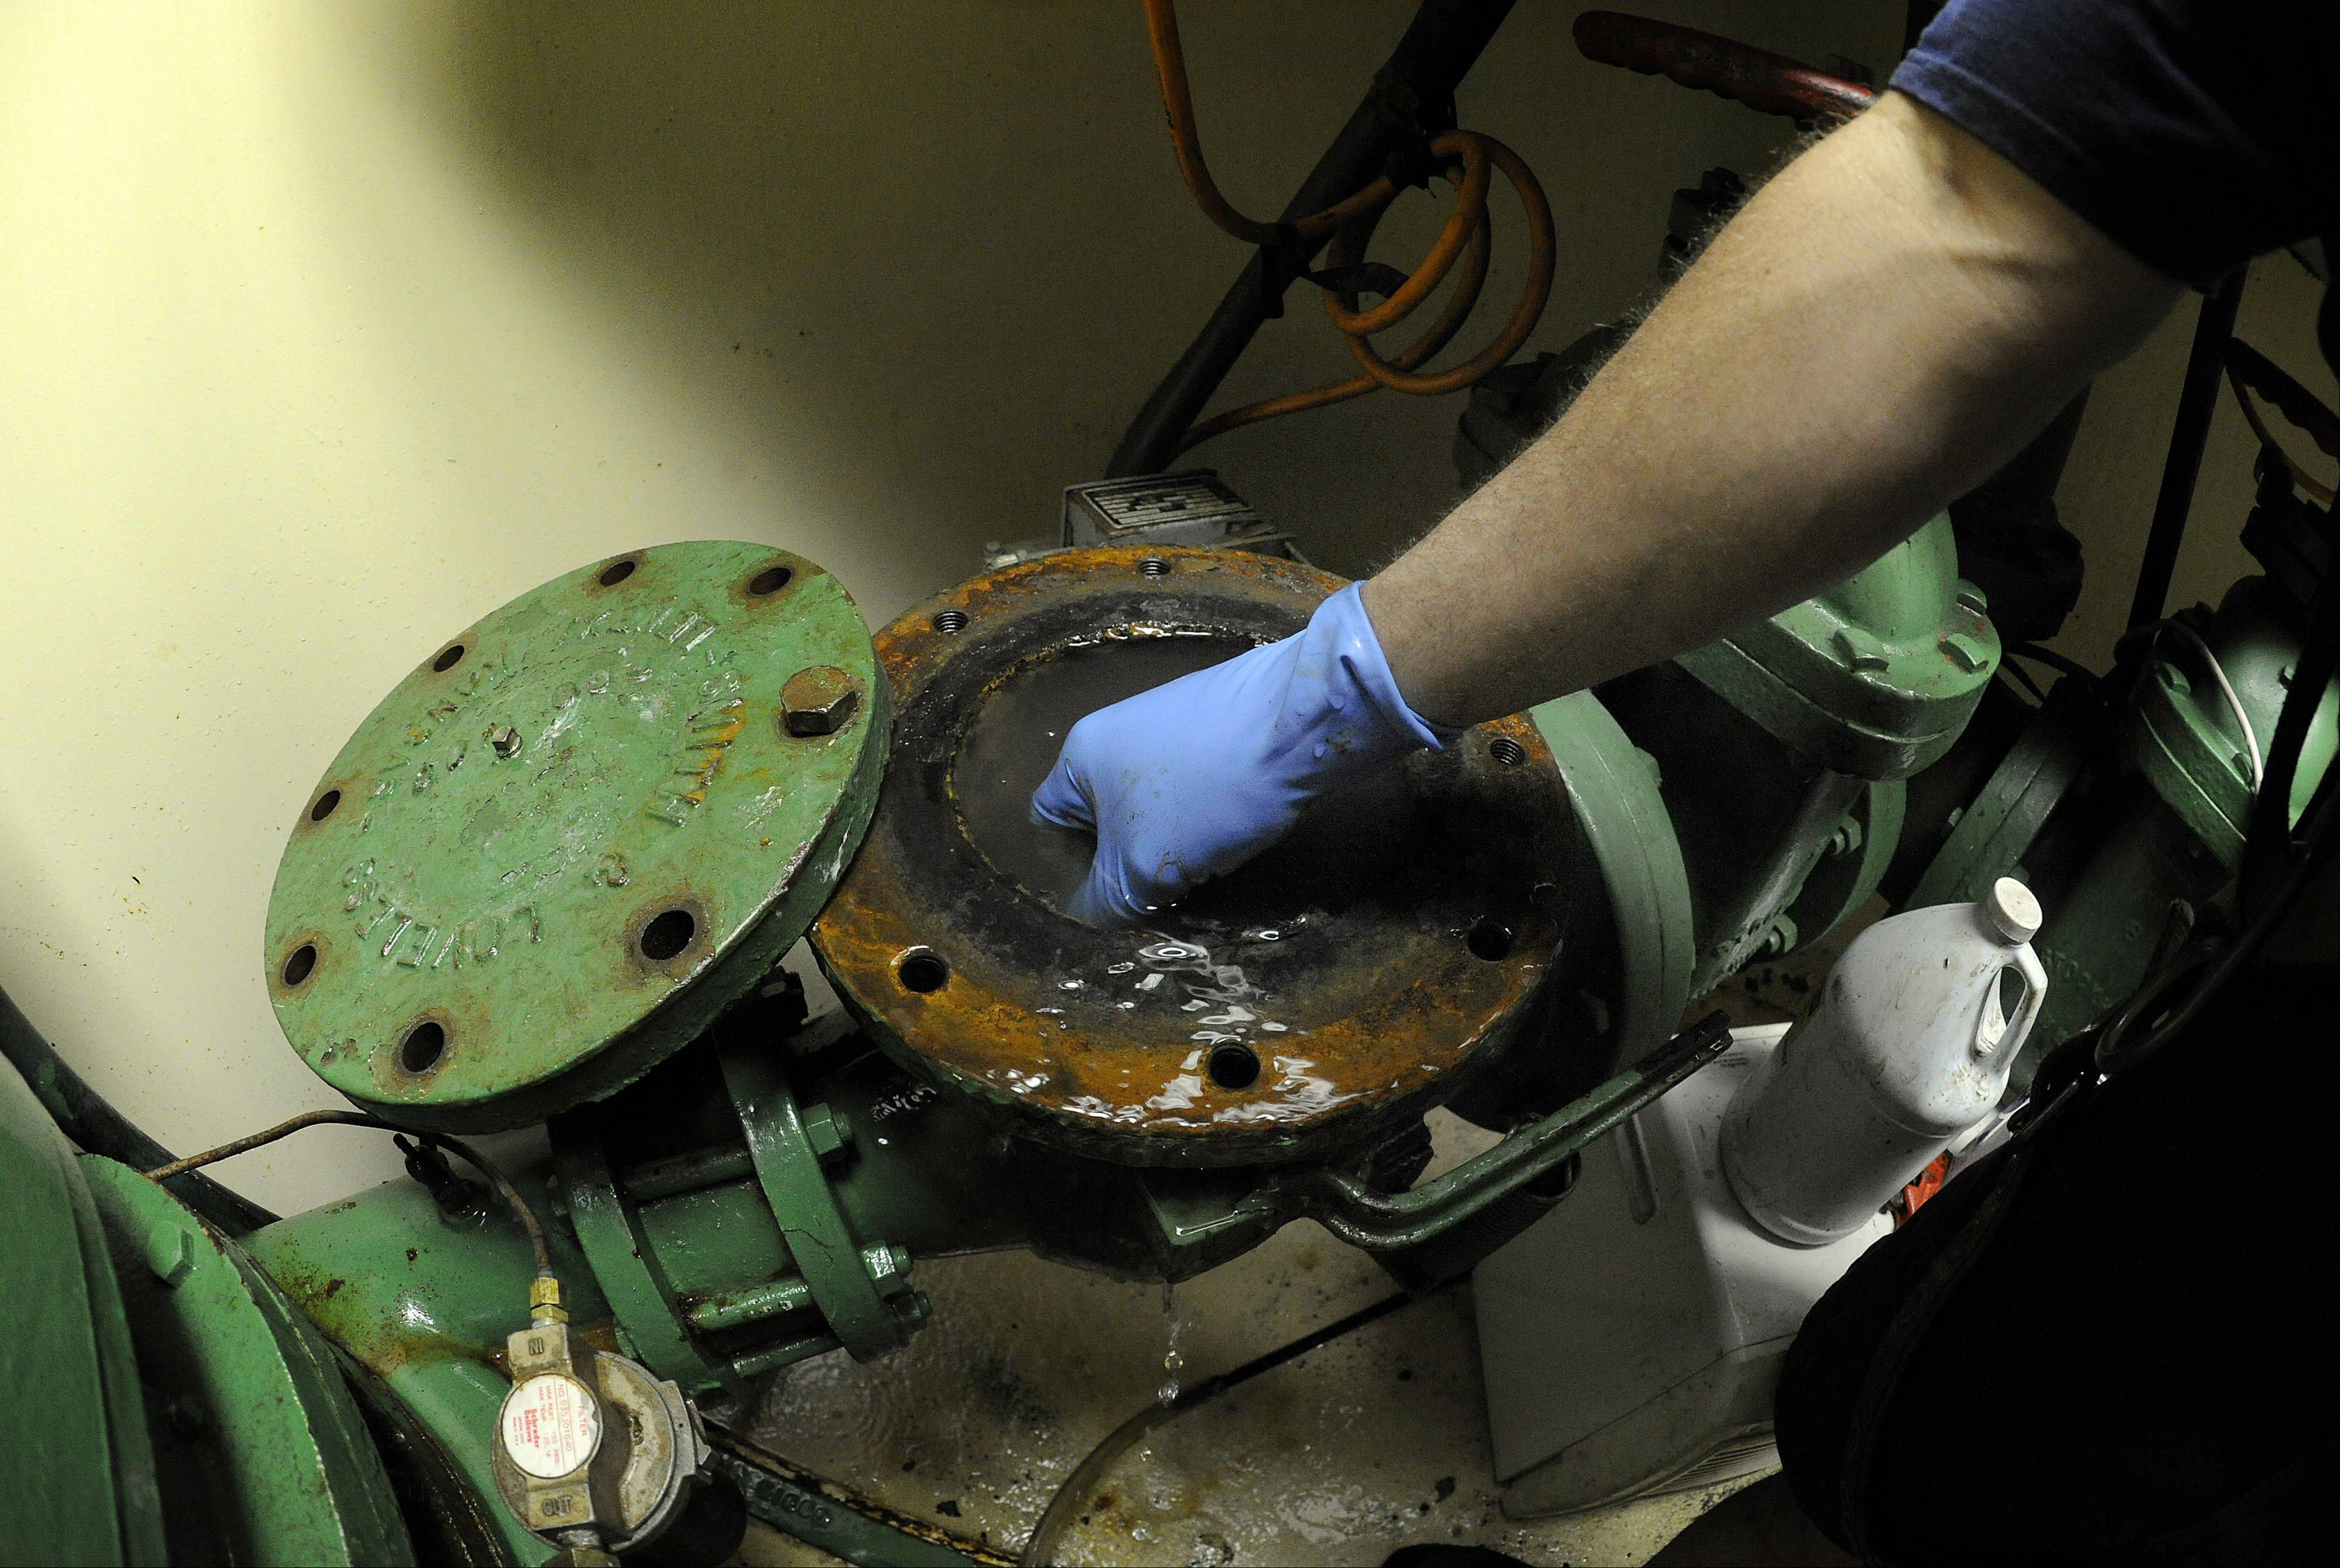 Geoff Smith cleans out a malfunctioning pump 50 feet underground at the Honeywell lift station for raw sewage, using his hand to remedy the problem area.